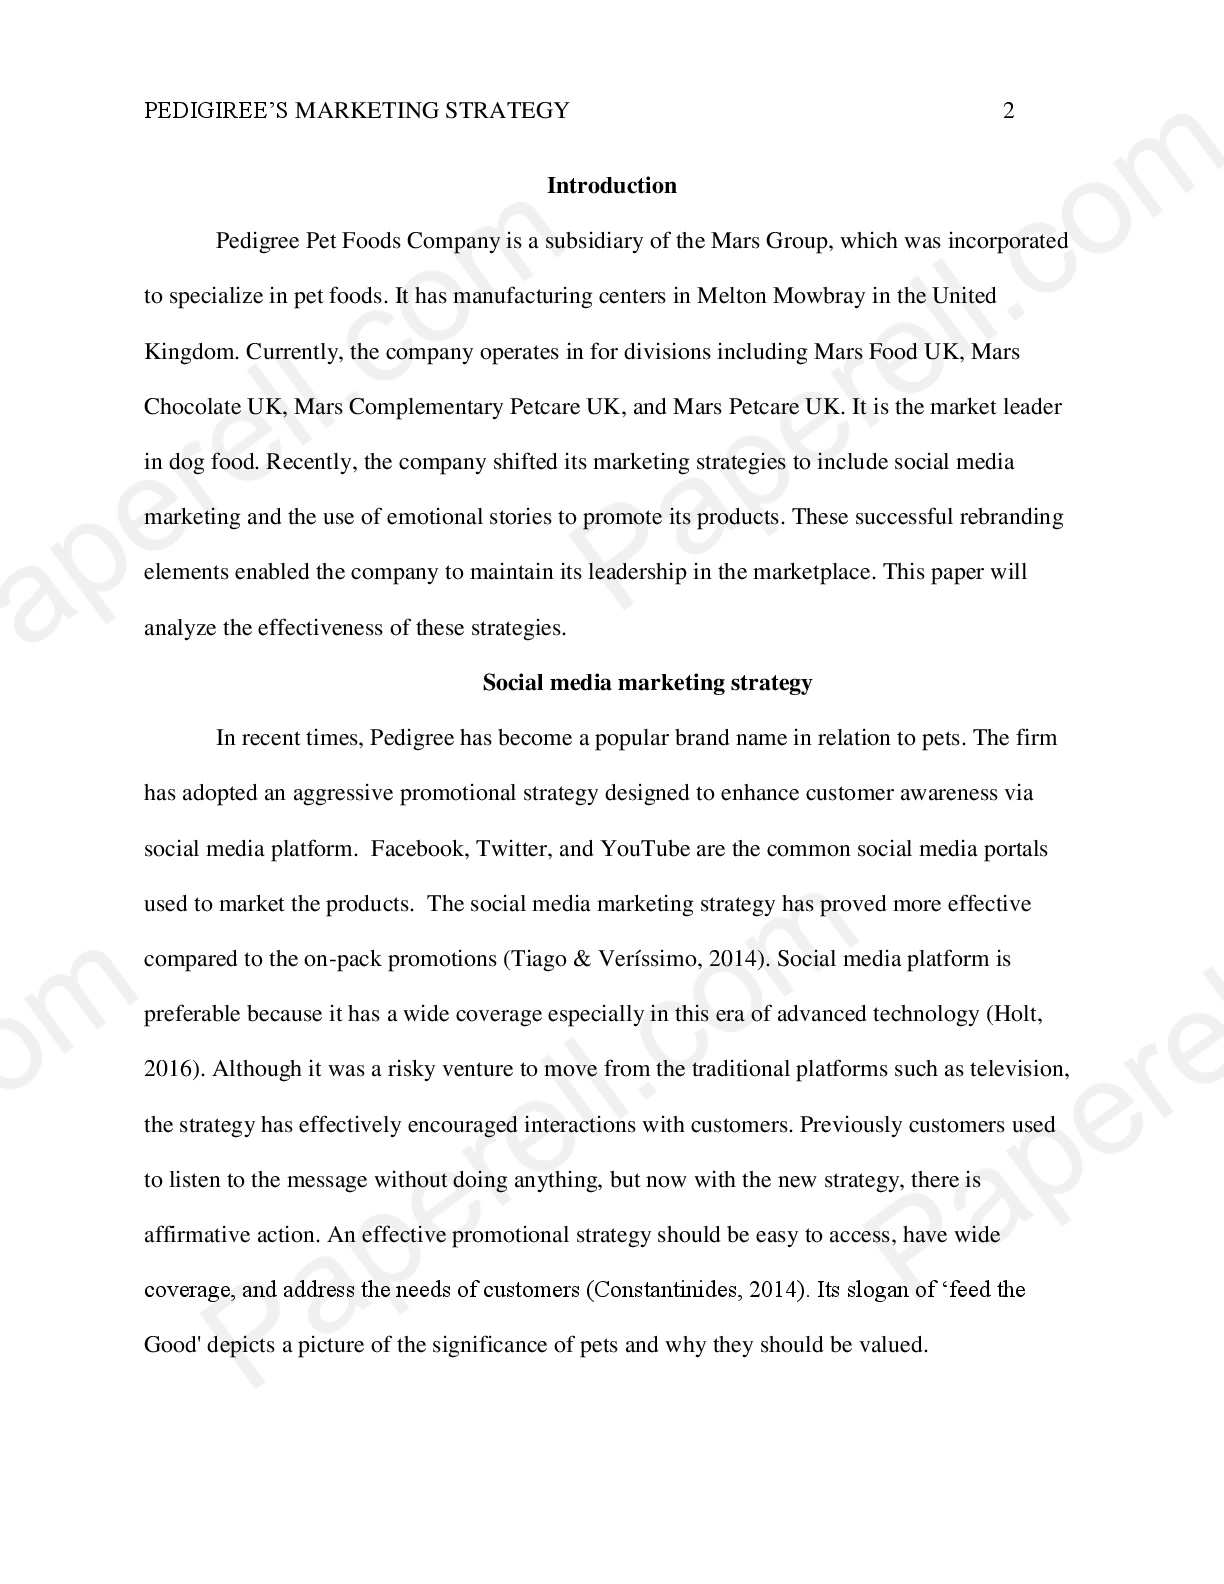 How To Write An Application Essay For High School View Random Sample Of Writers Work Example Of English Essay also Essay In English Analytical Essay Writing Service By Qualified Experts  Paperellcom High School Personal Statement Essay Examples